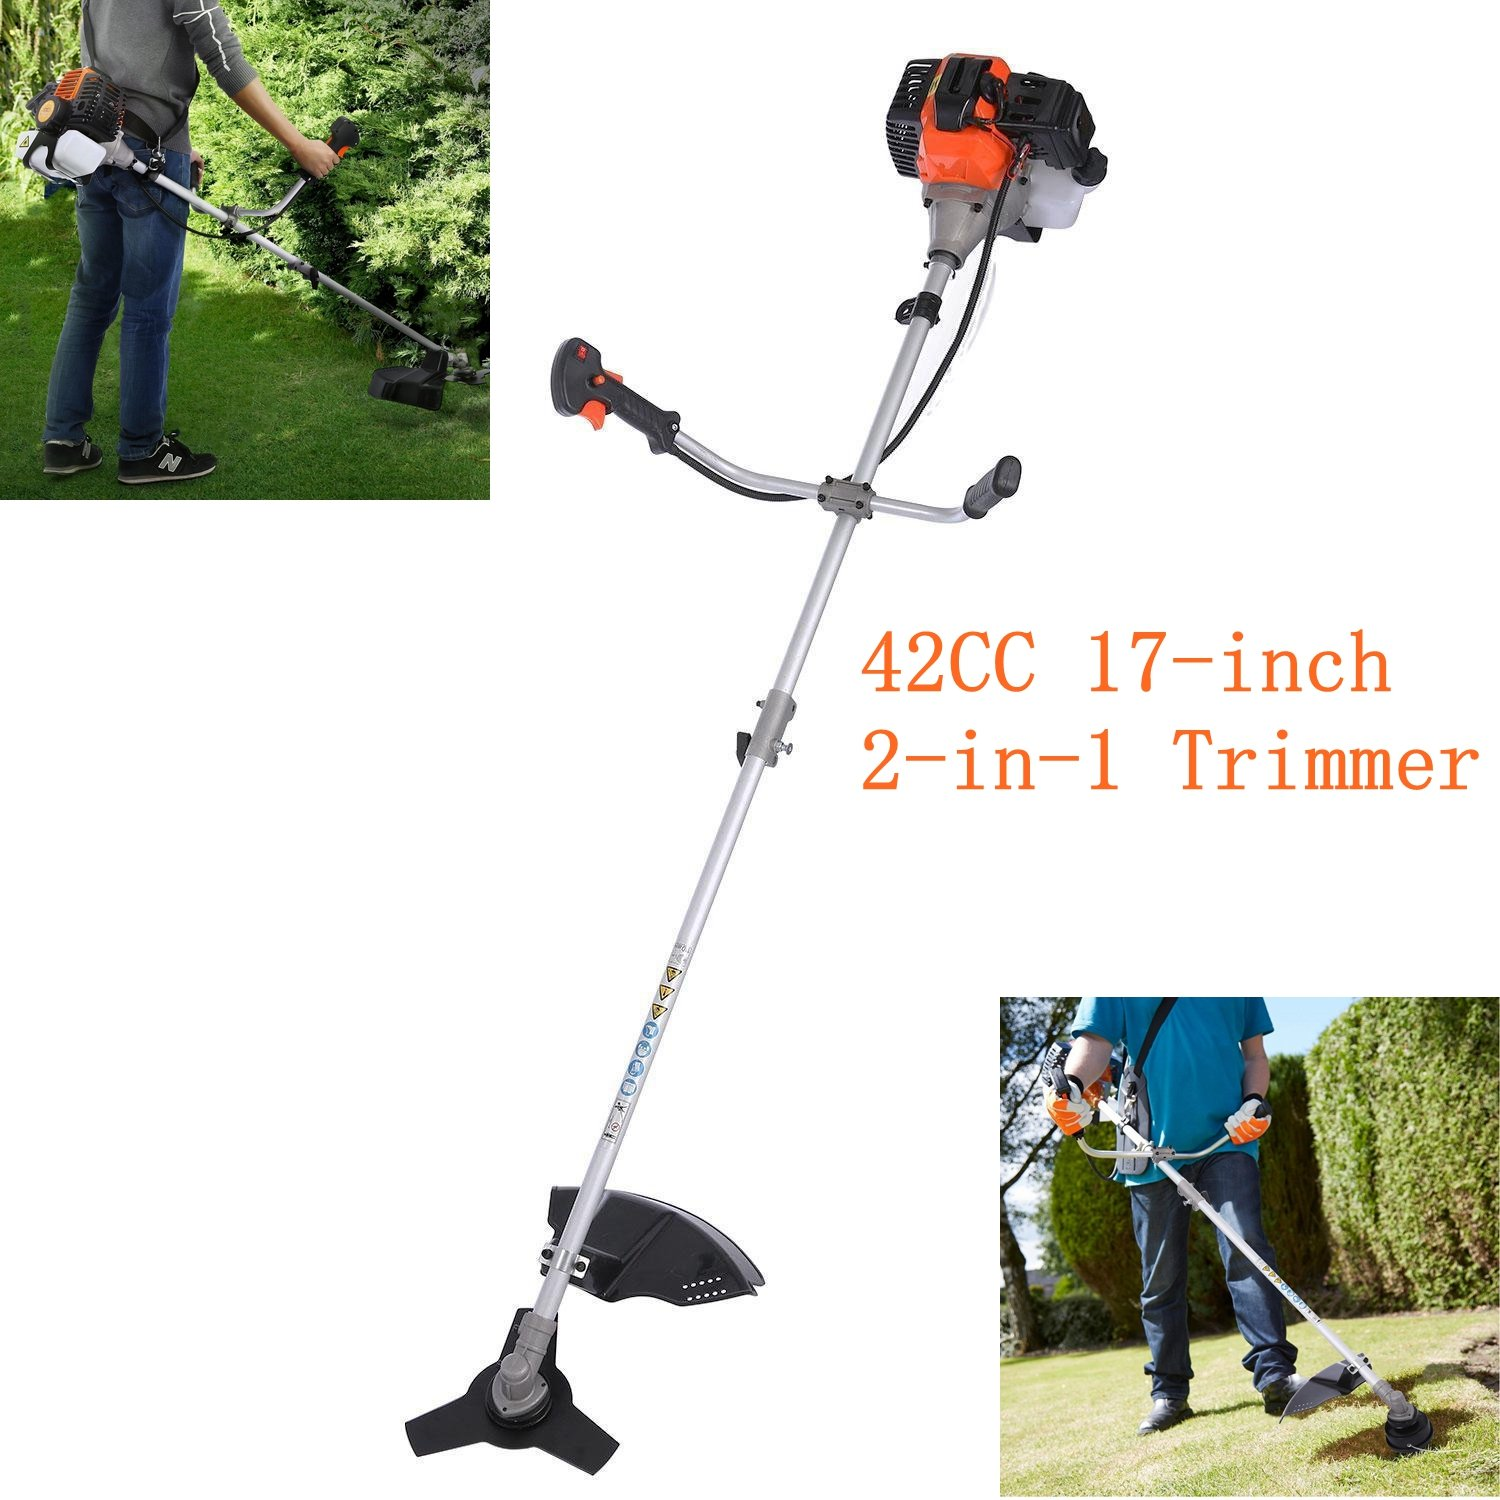 Vividy 42CC 2-Stroke Gas Powered Trimmer, 2 in 1 Long Reach Pole Gas Weed Eater, Weed Wacker Straight Shaft for Lawn Garden [US STORAGE]